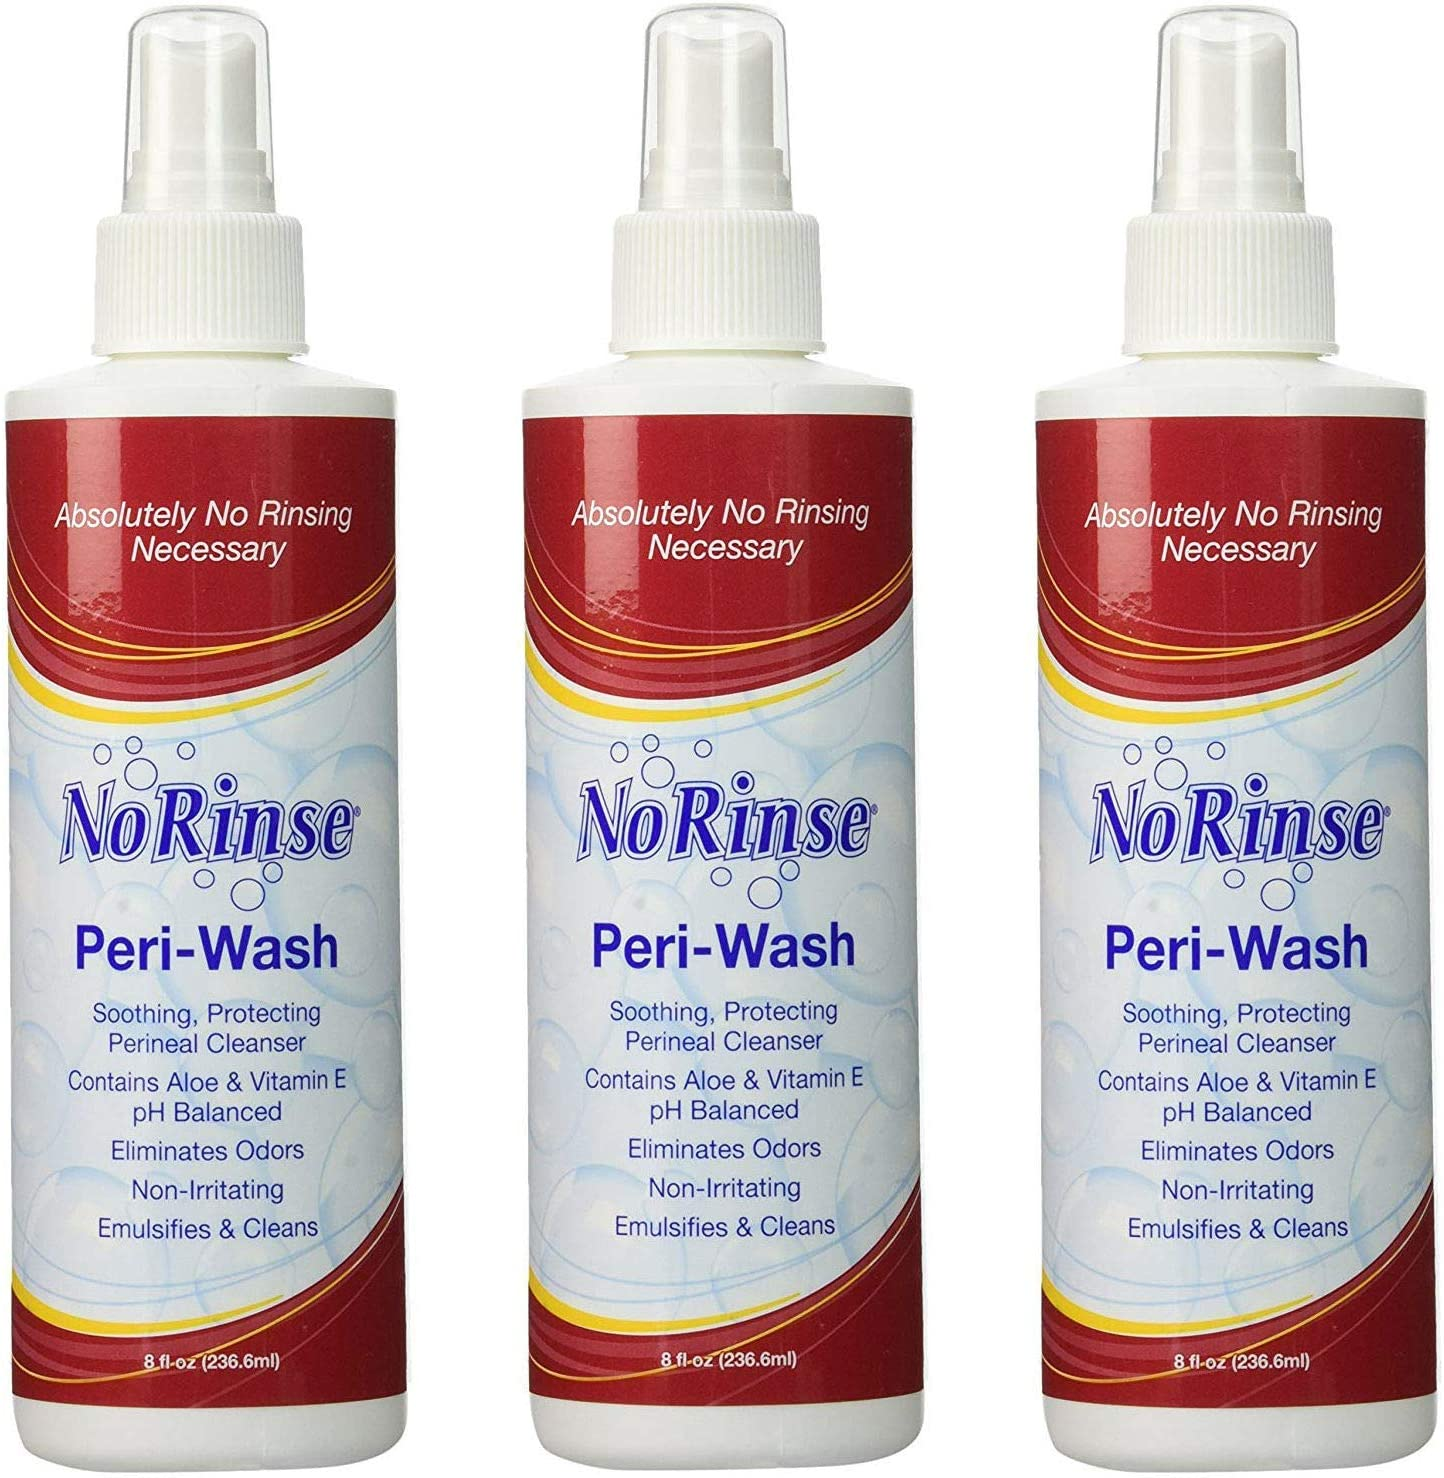 No-Rinse Peri-Wash, 8 fl oz - Soothing, Protecting Perineal Cleanser (Pack of 3)